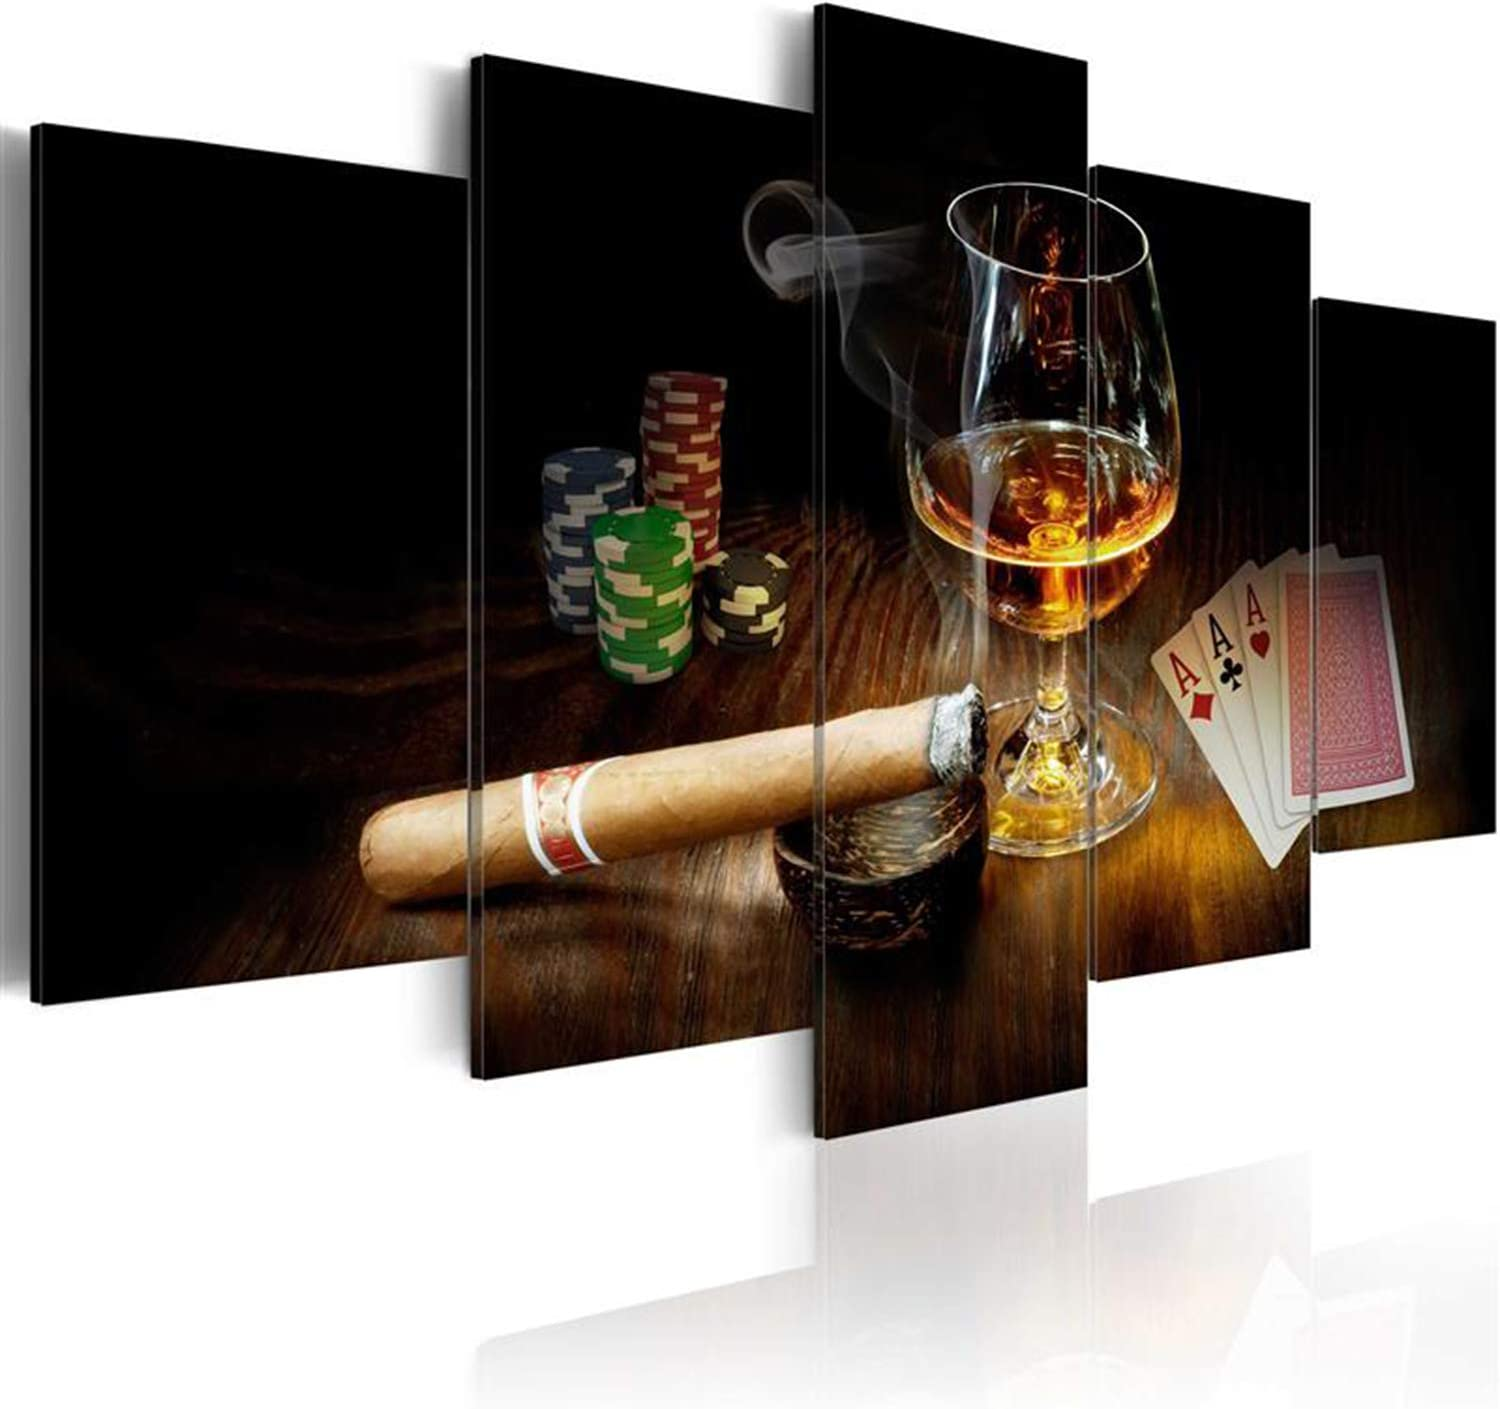 AWLXPHY Decor Liquor Canvas Cigars Cup Wall Art Painting Set Large Framed 5 Panels for Poker Room Decor Modern Still Life Stretched Artwork Giclee (Black, W80 x H40)